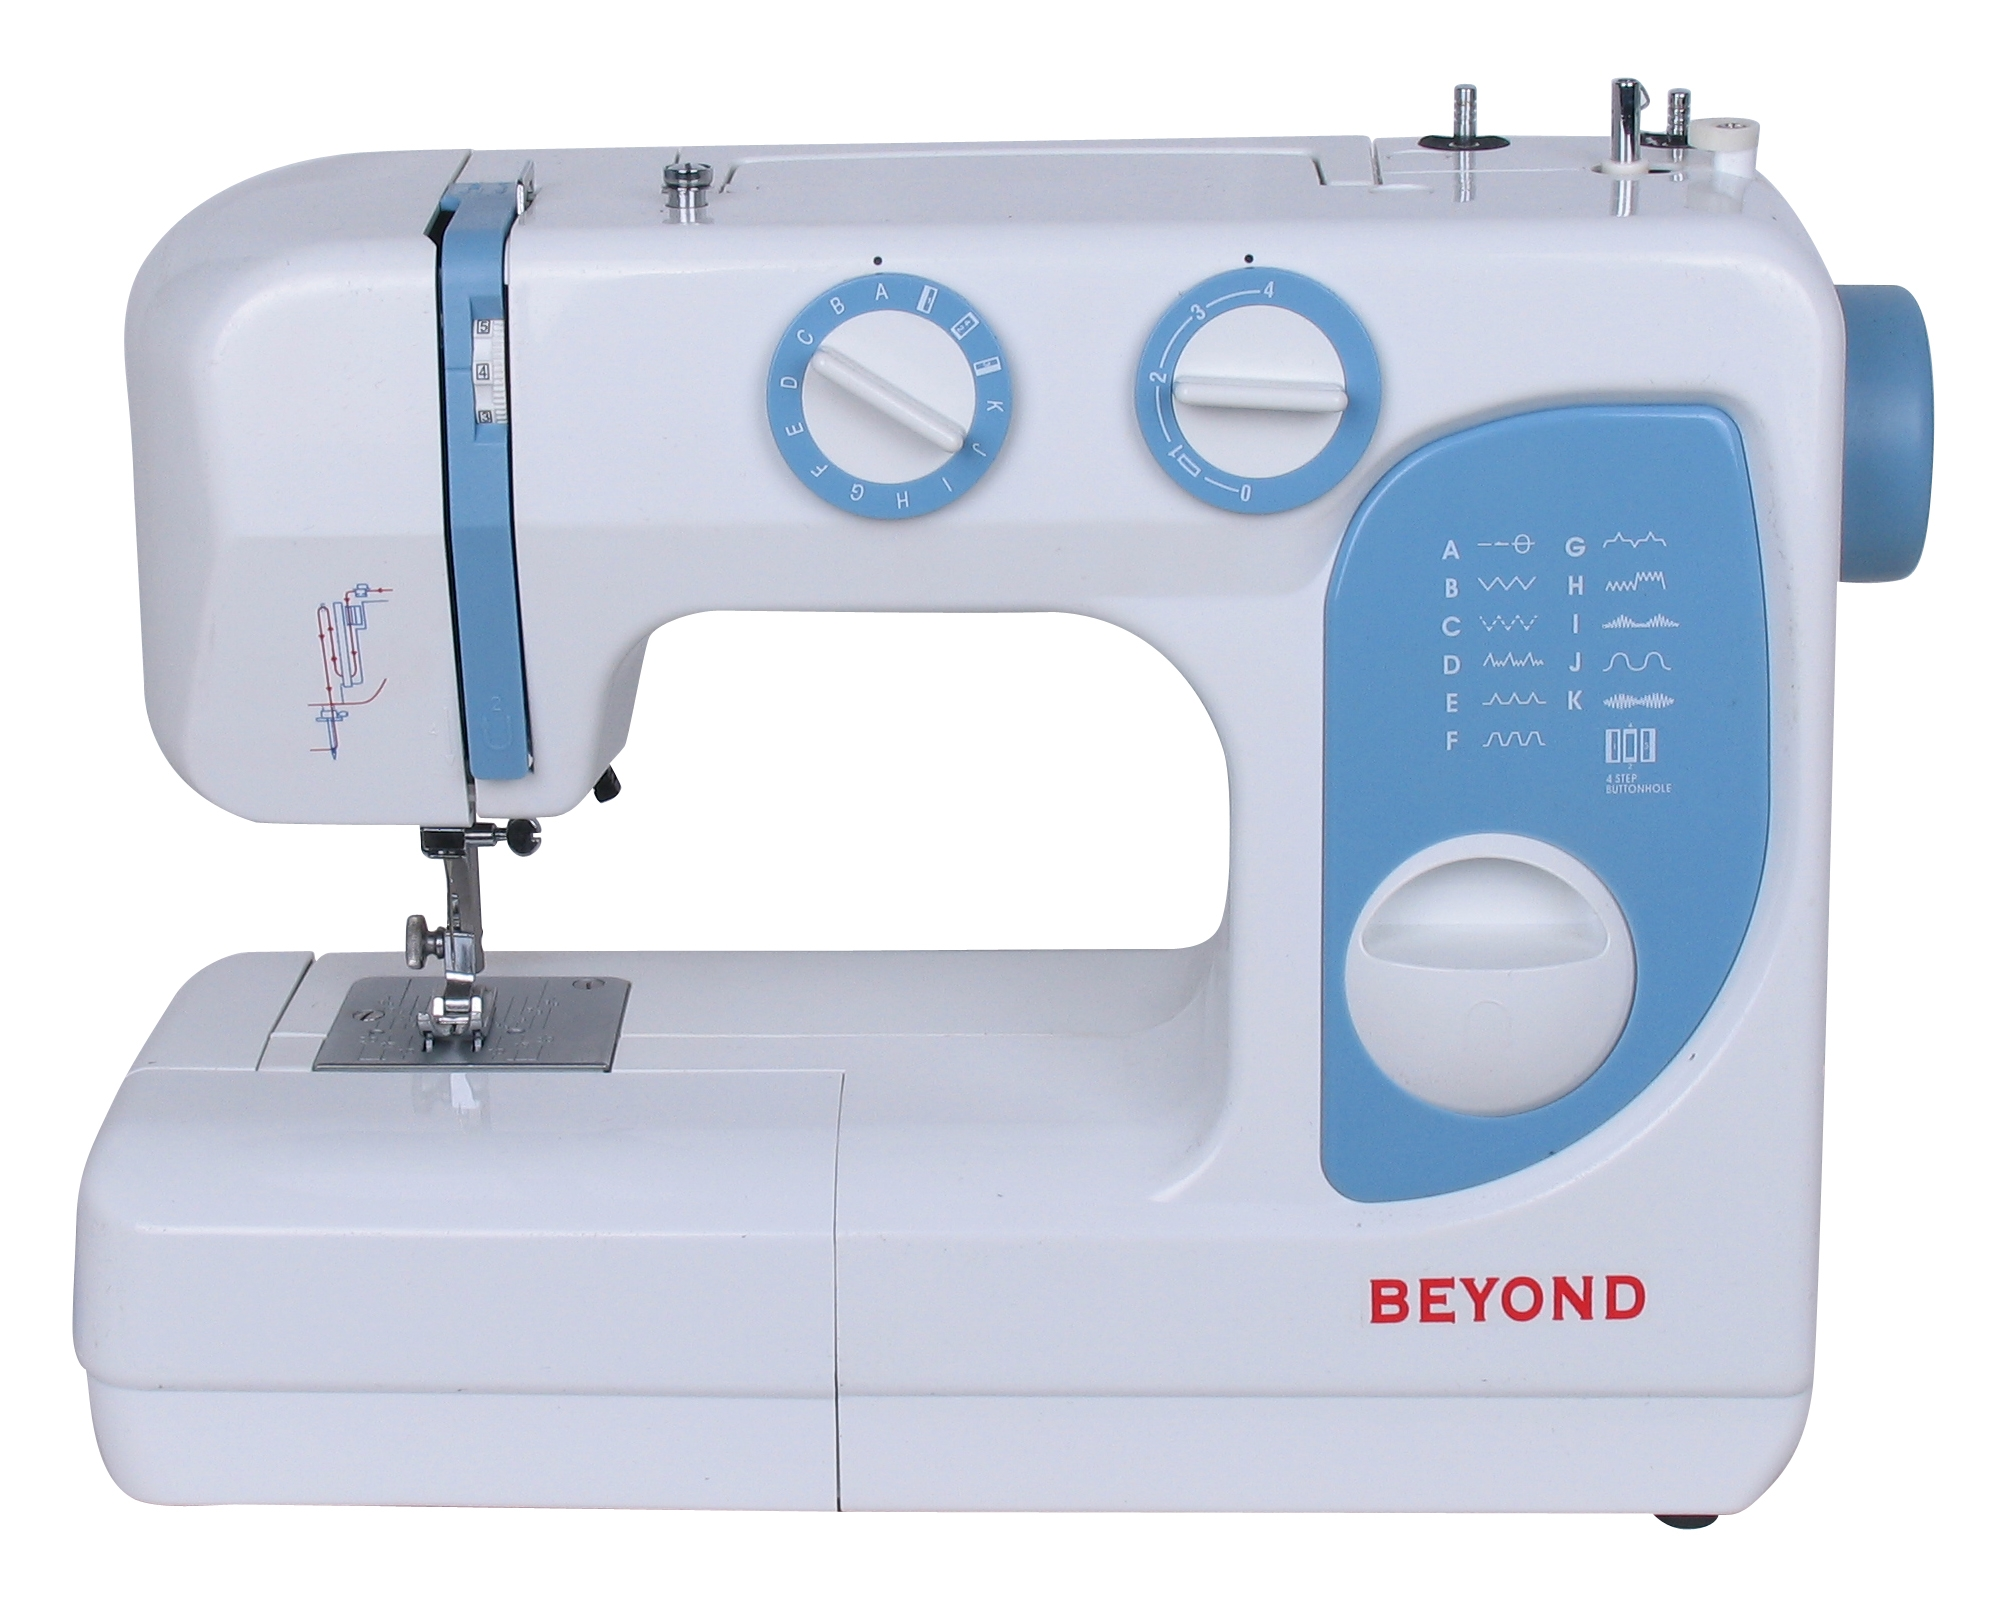 Dragonfly Desktop App Dragonfly Multifunctional Electric Sewing Machine